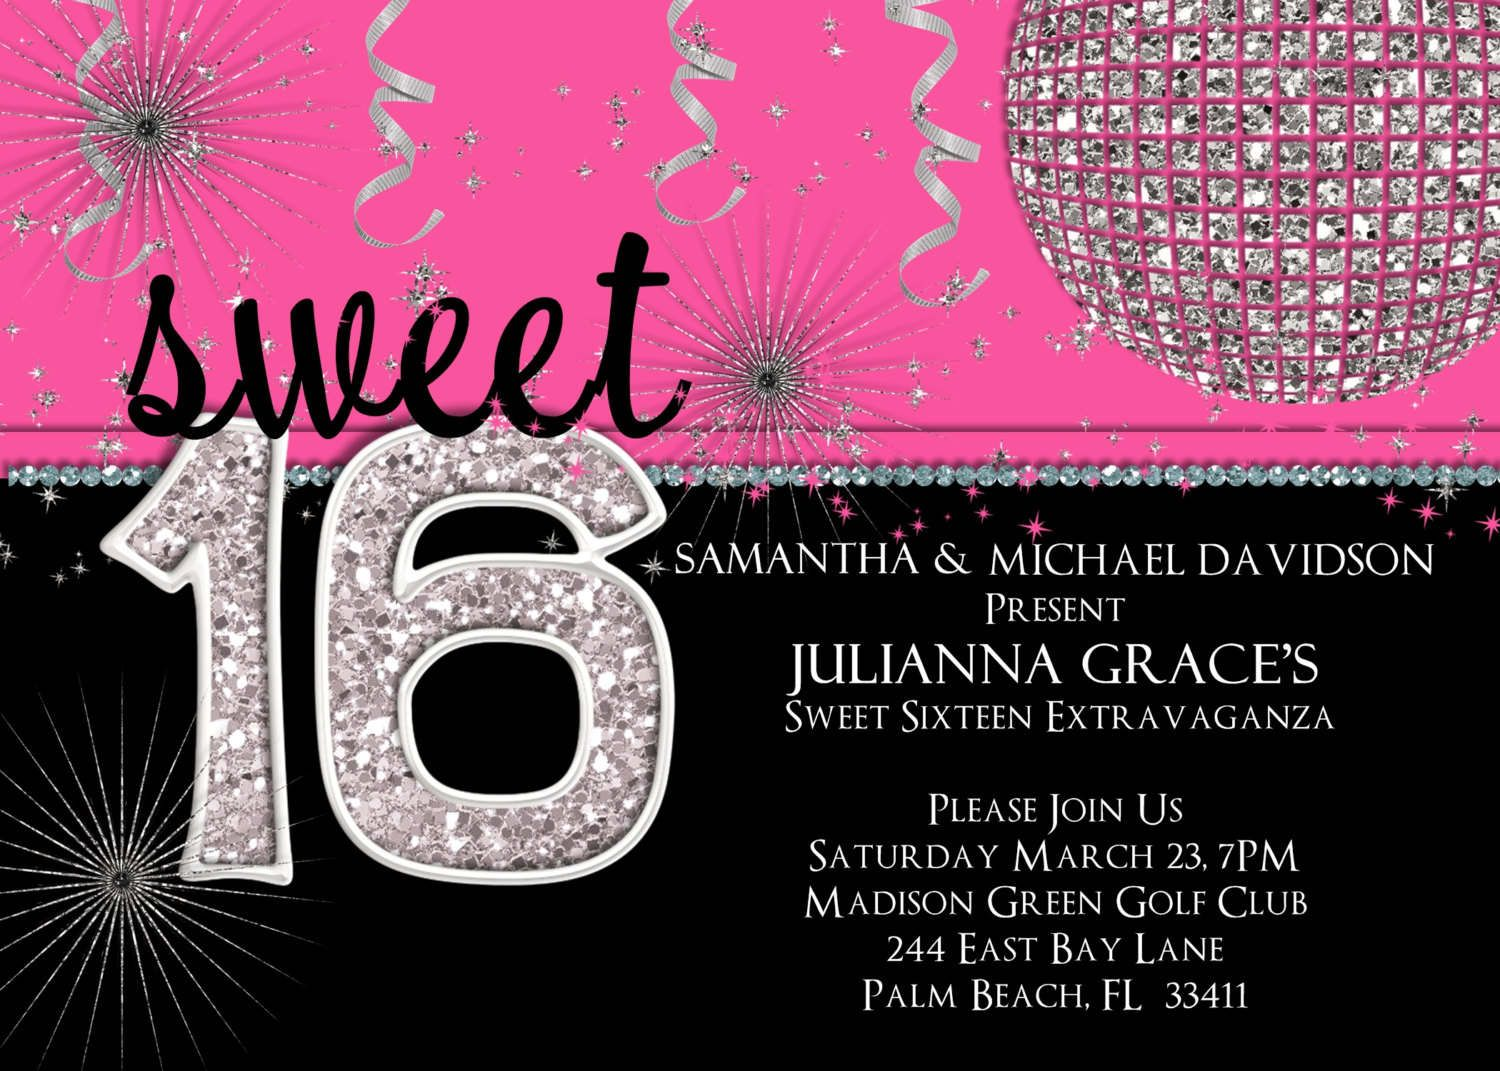 Sweet Sixteen Invitations Sweet Invitation Templates With - 21st birthday invitation card background